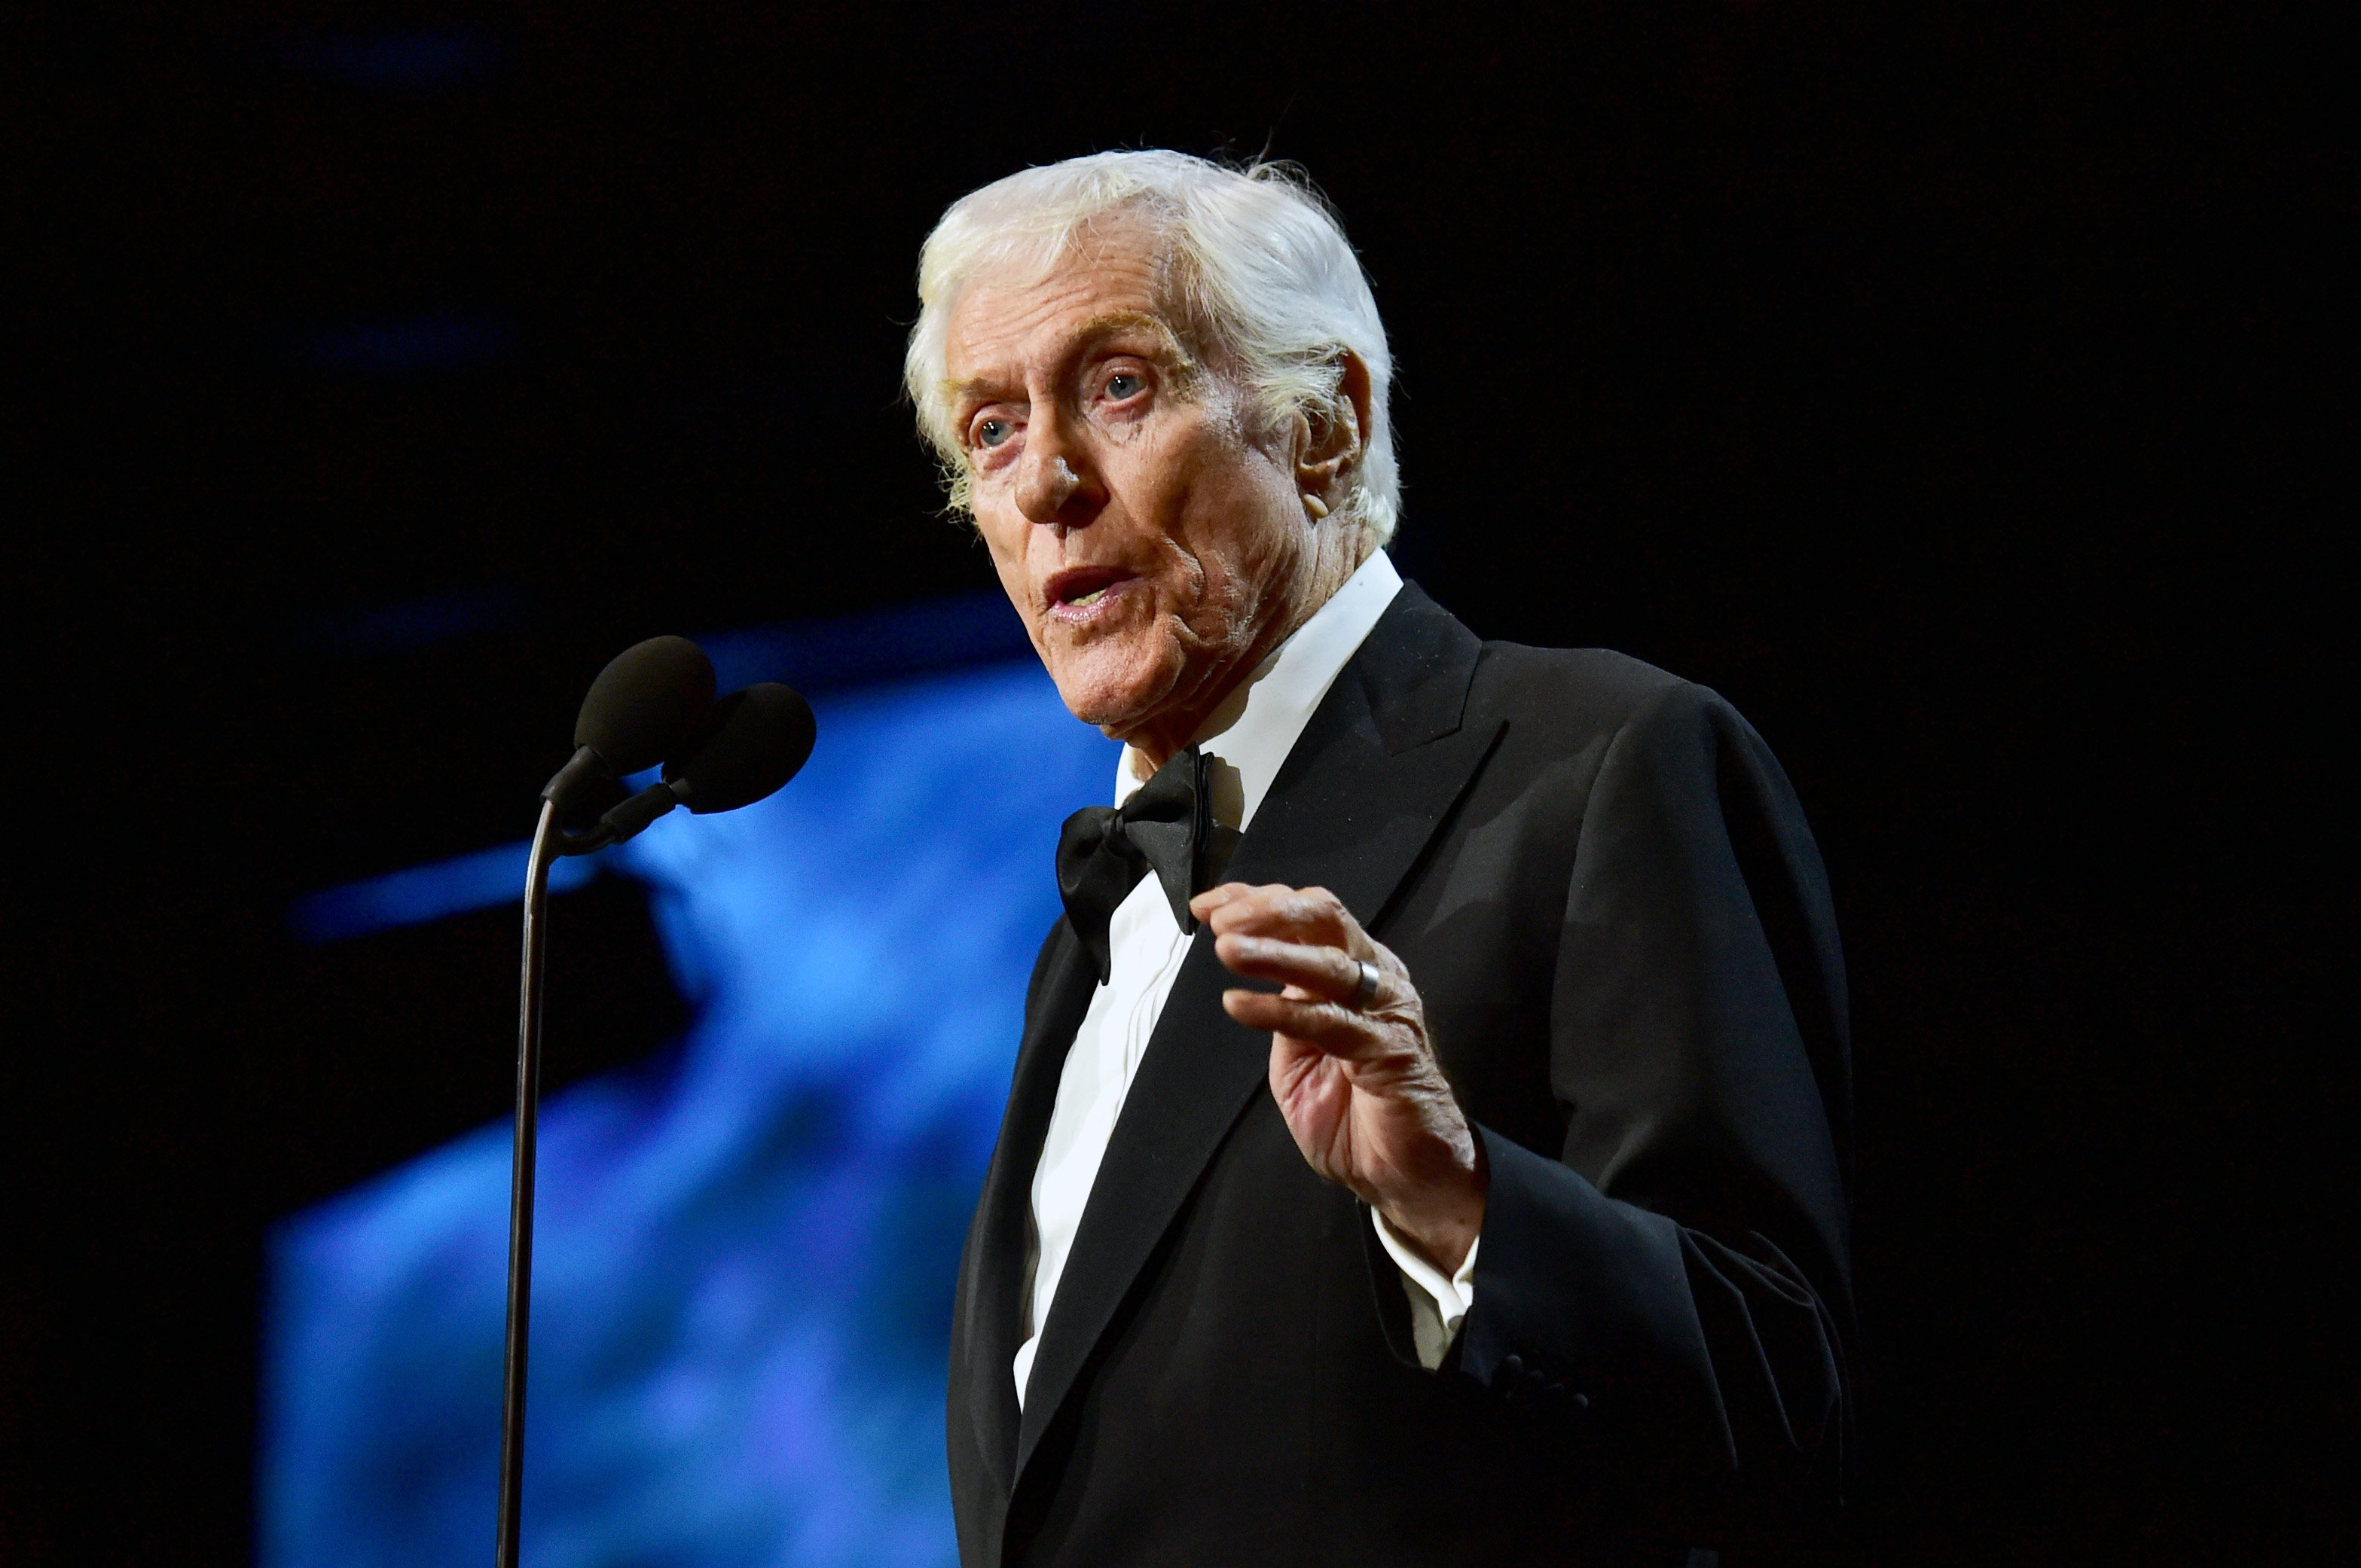 Dick Van Dyke on October 27, 2017 in Beverly Hills, California | Photo: Getty Images/Global Images Ukraine